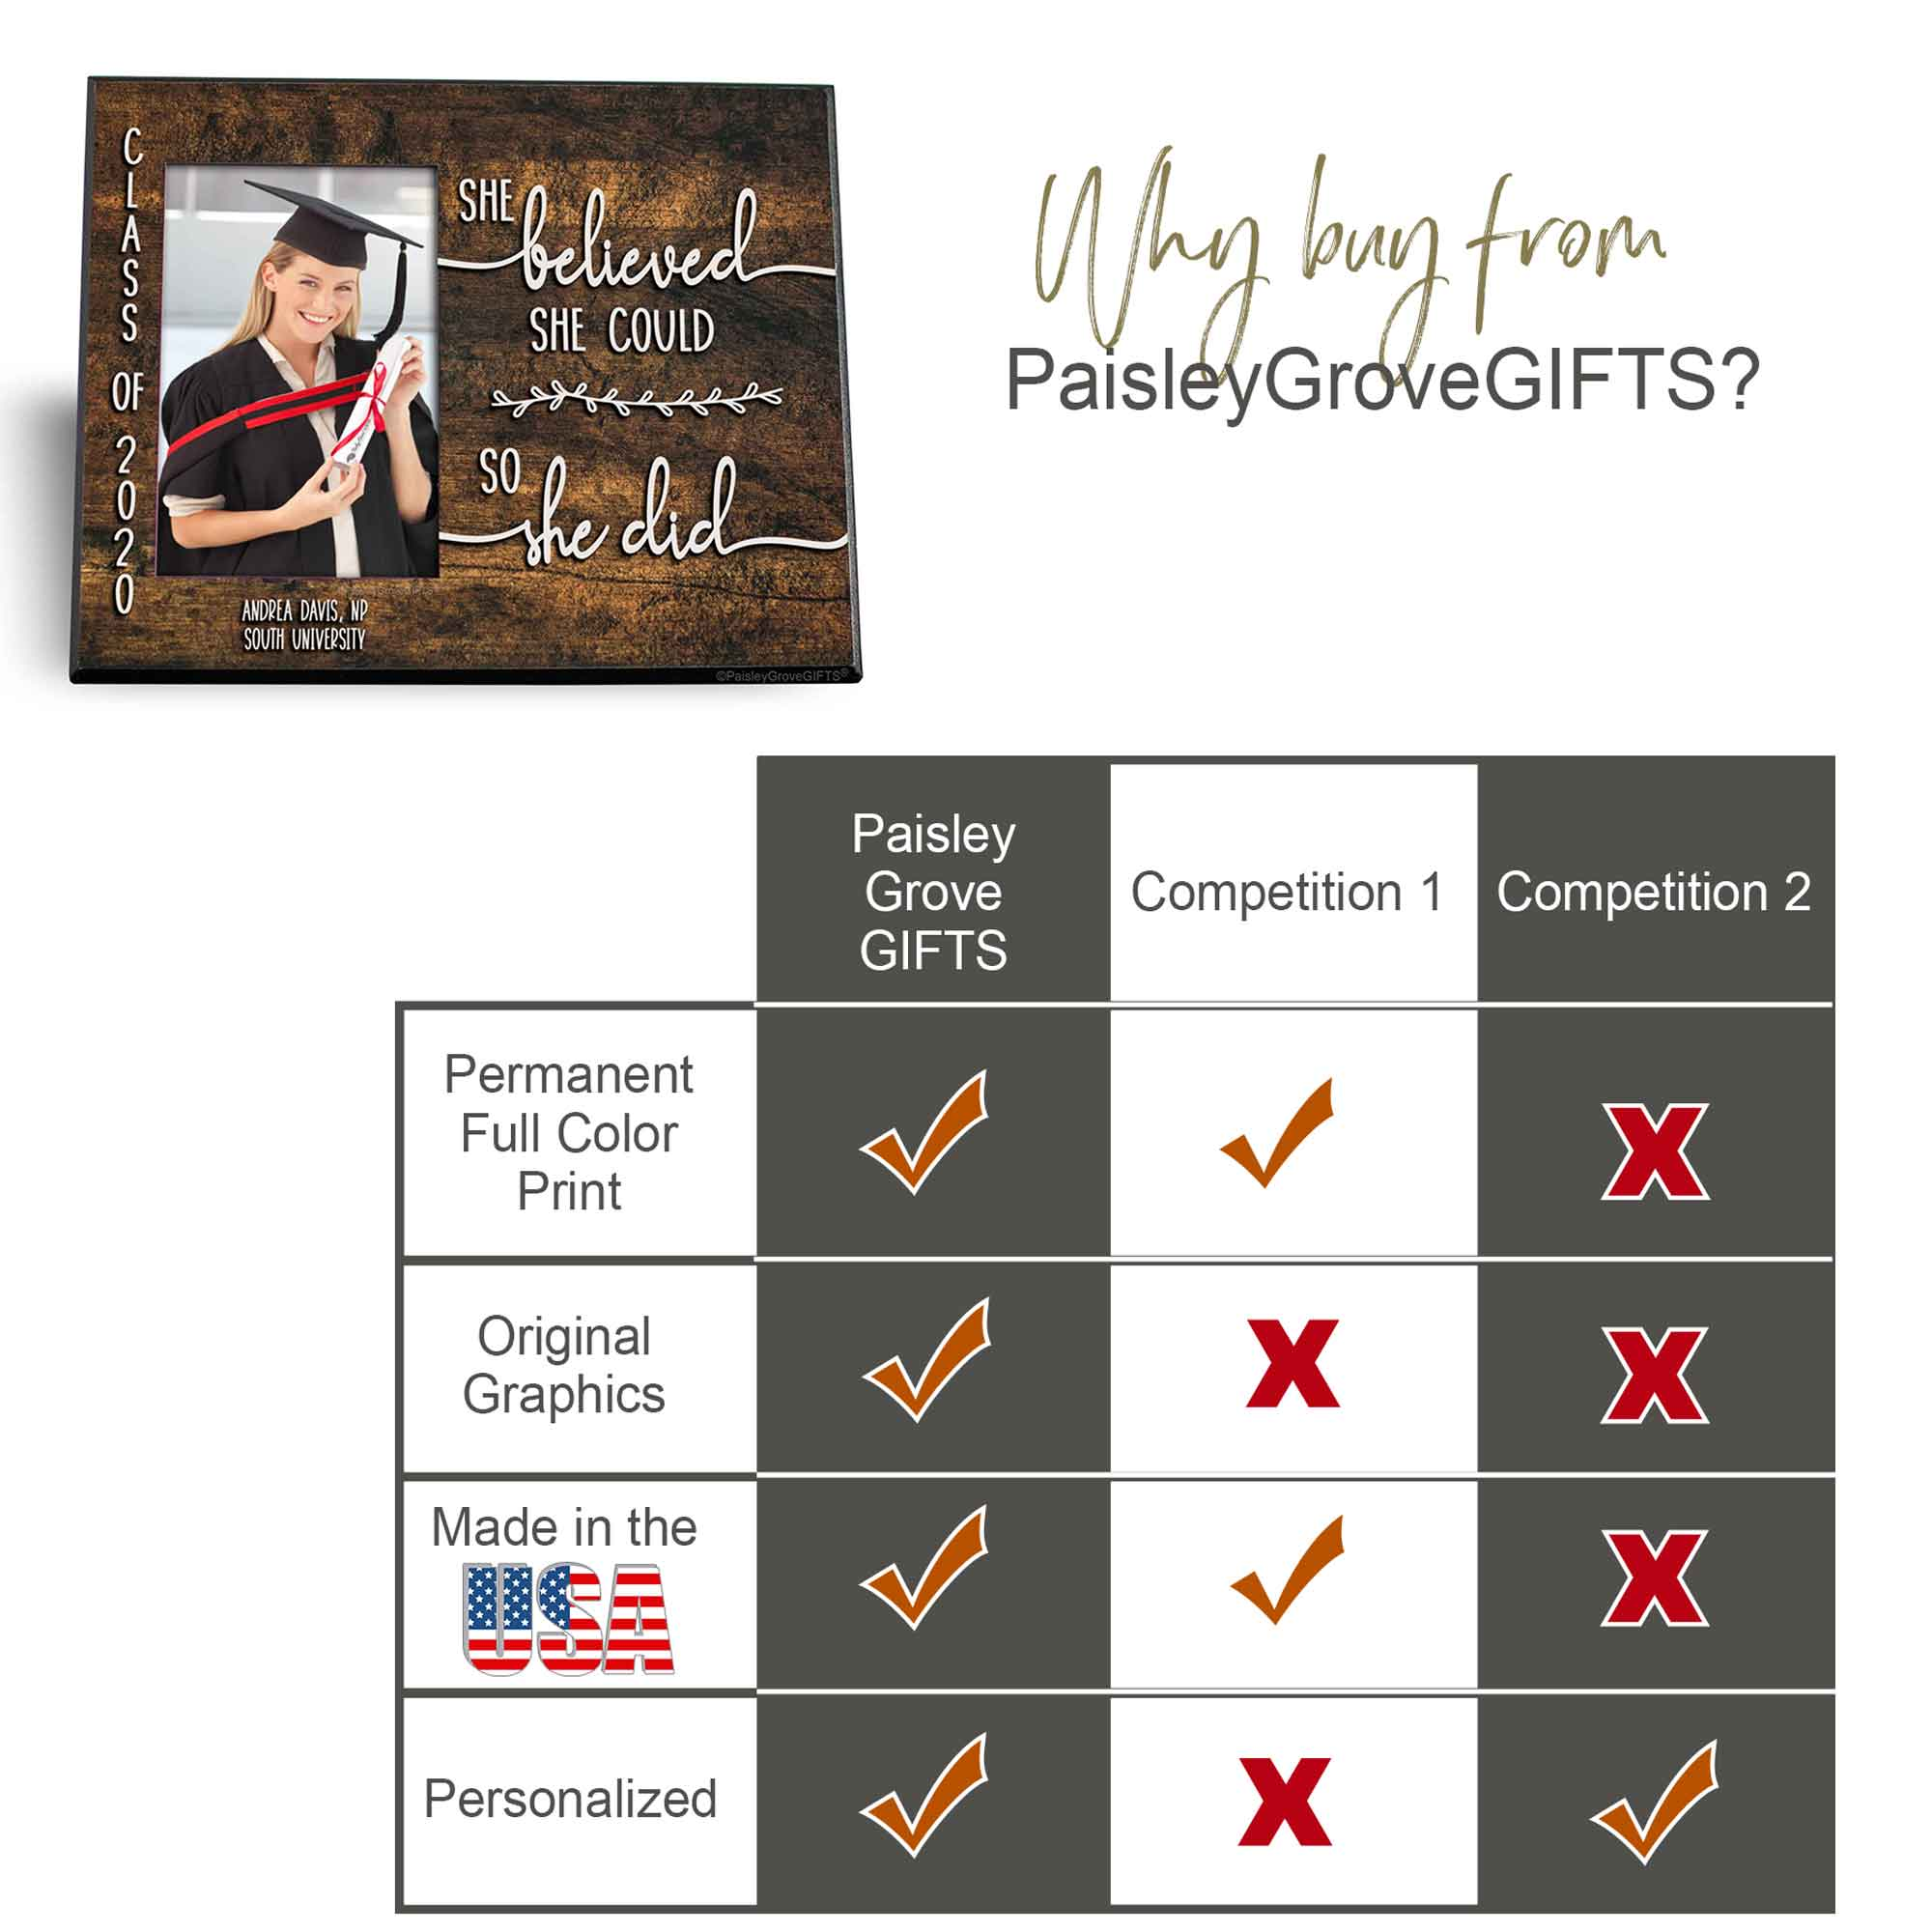 CopyrightPaisleyGroveGIFTS S226f2 Unique customized gift for graduates, quality comparison chart